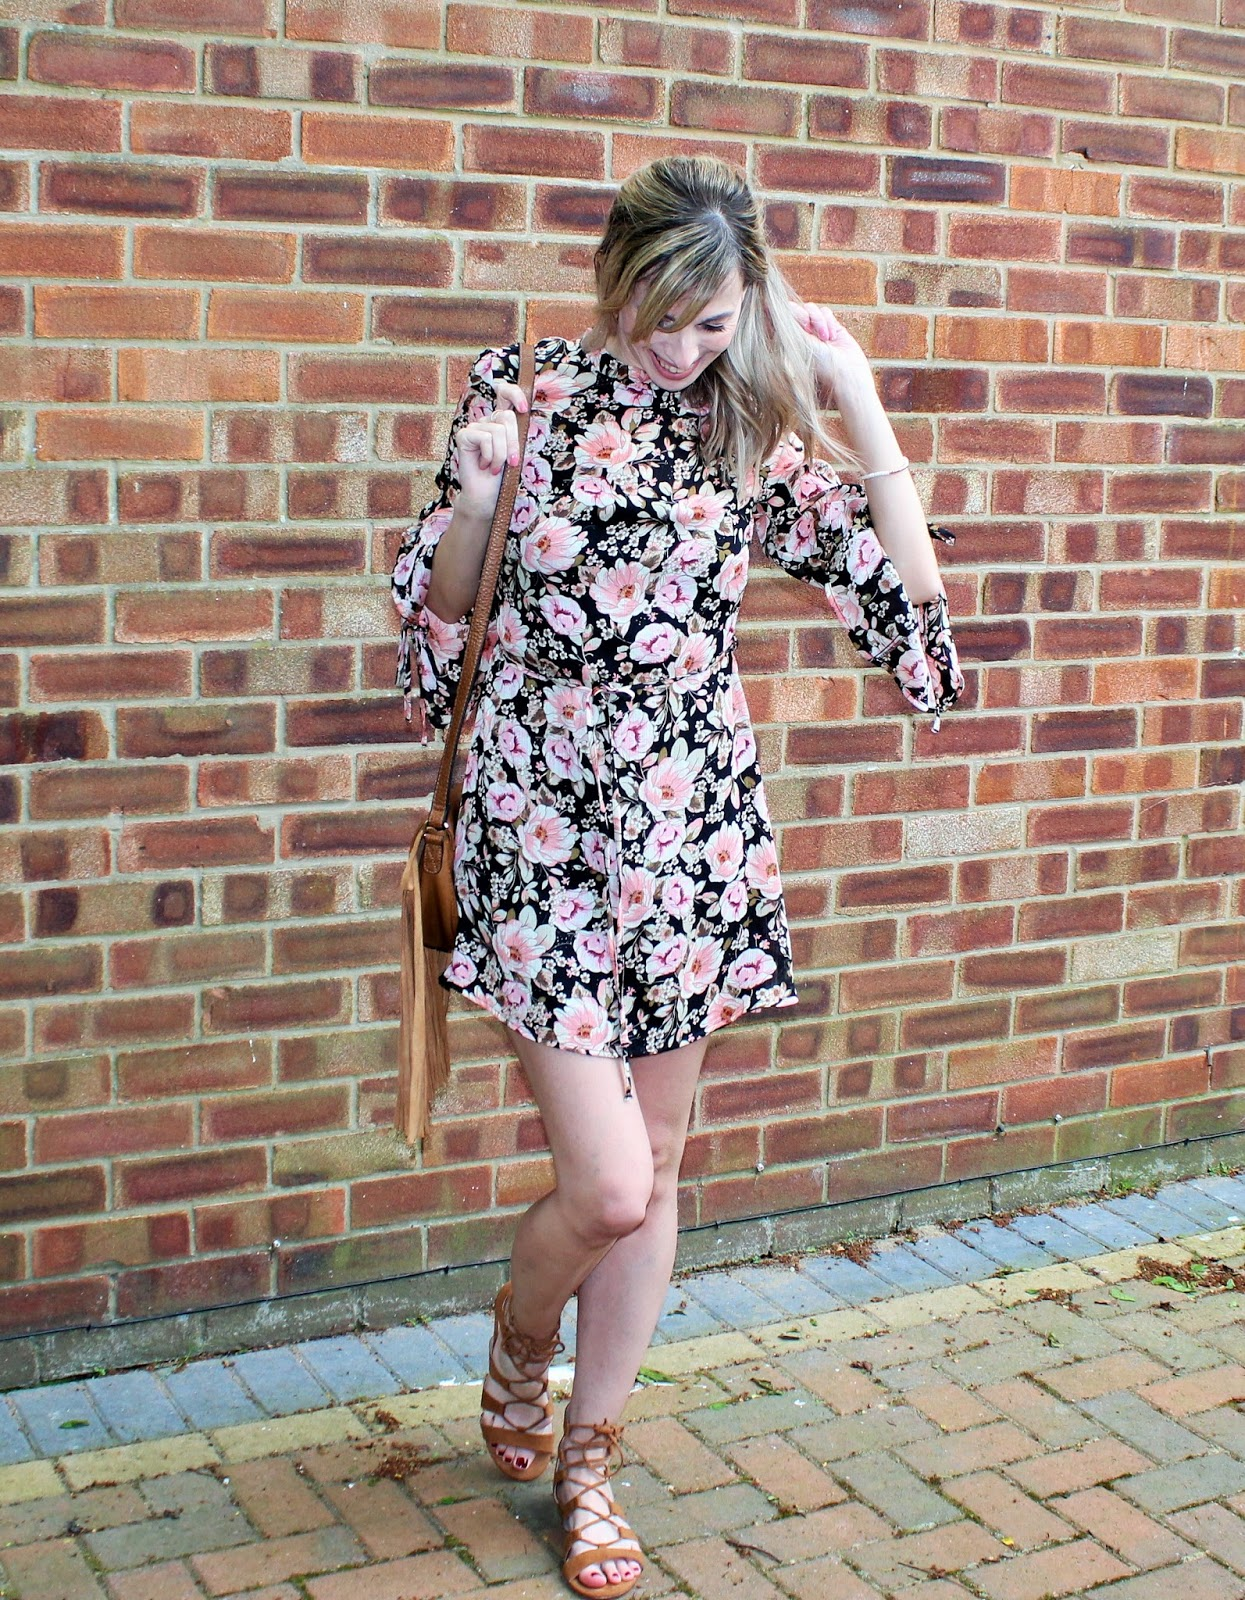 OOTD featuring a floral dress from Topshop and beaded bracelet from Lola Rose - 9